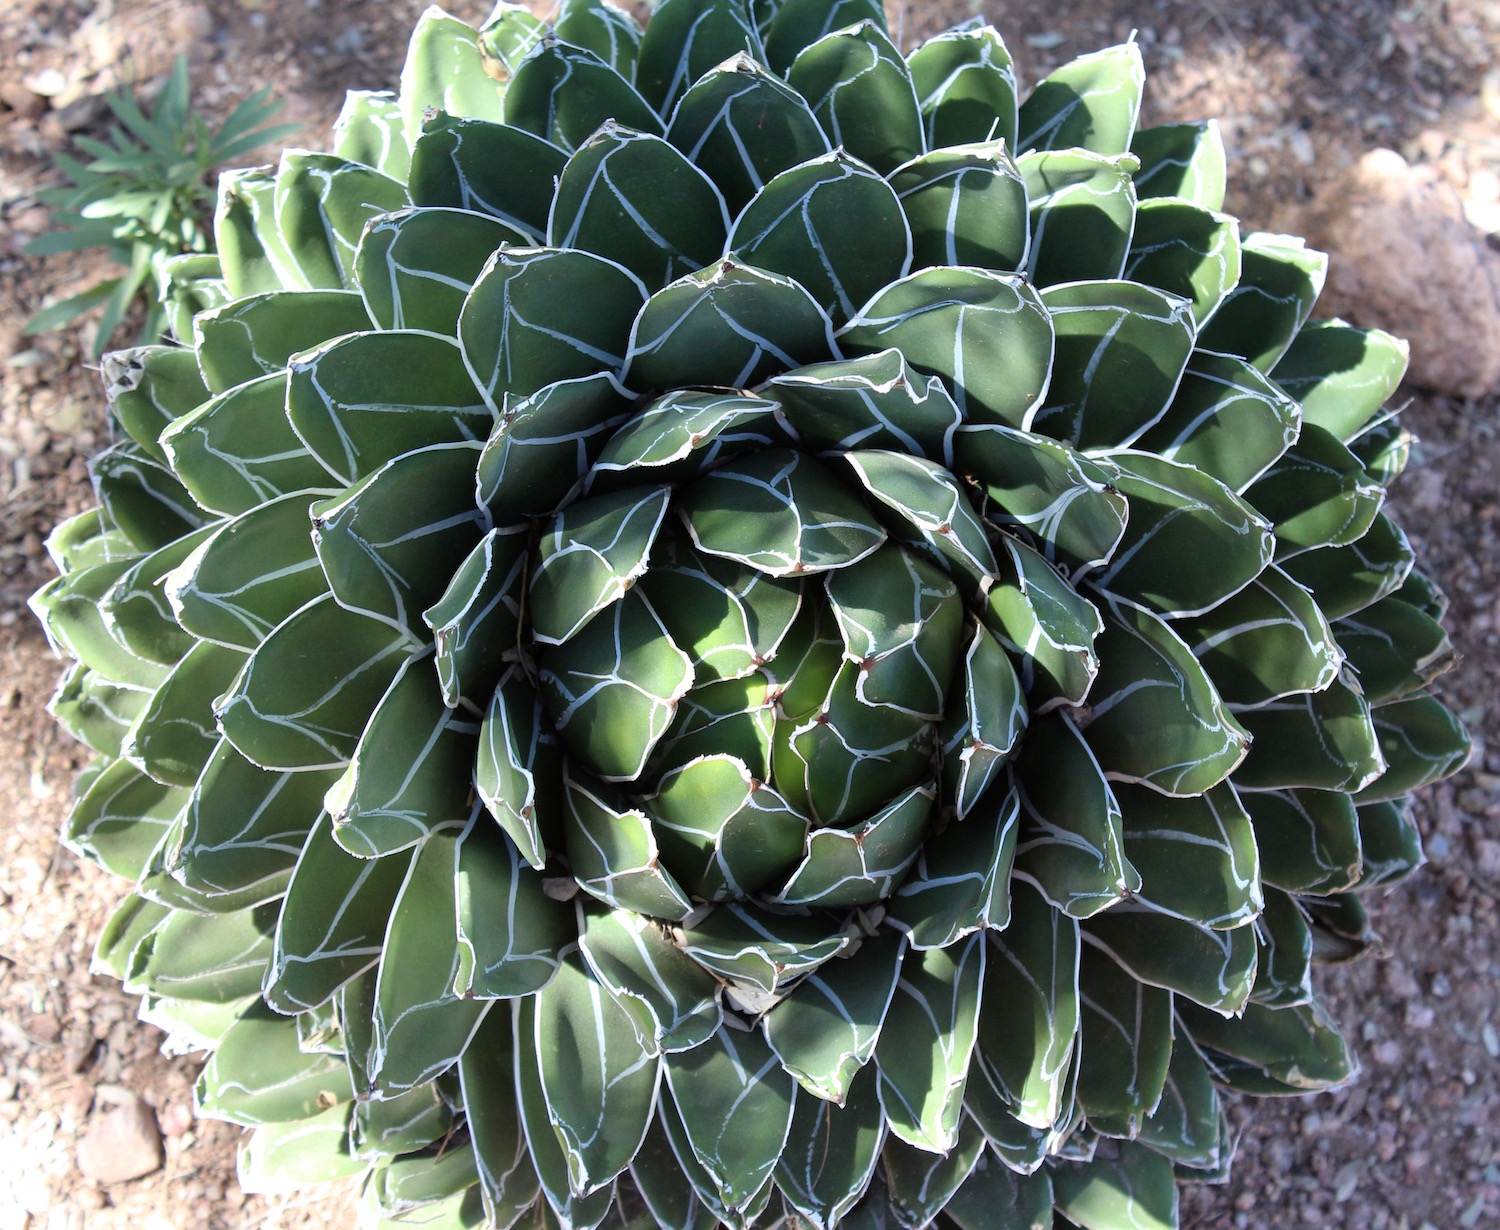 Agave - the genus of tequila!